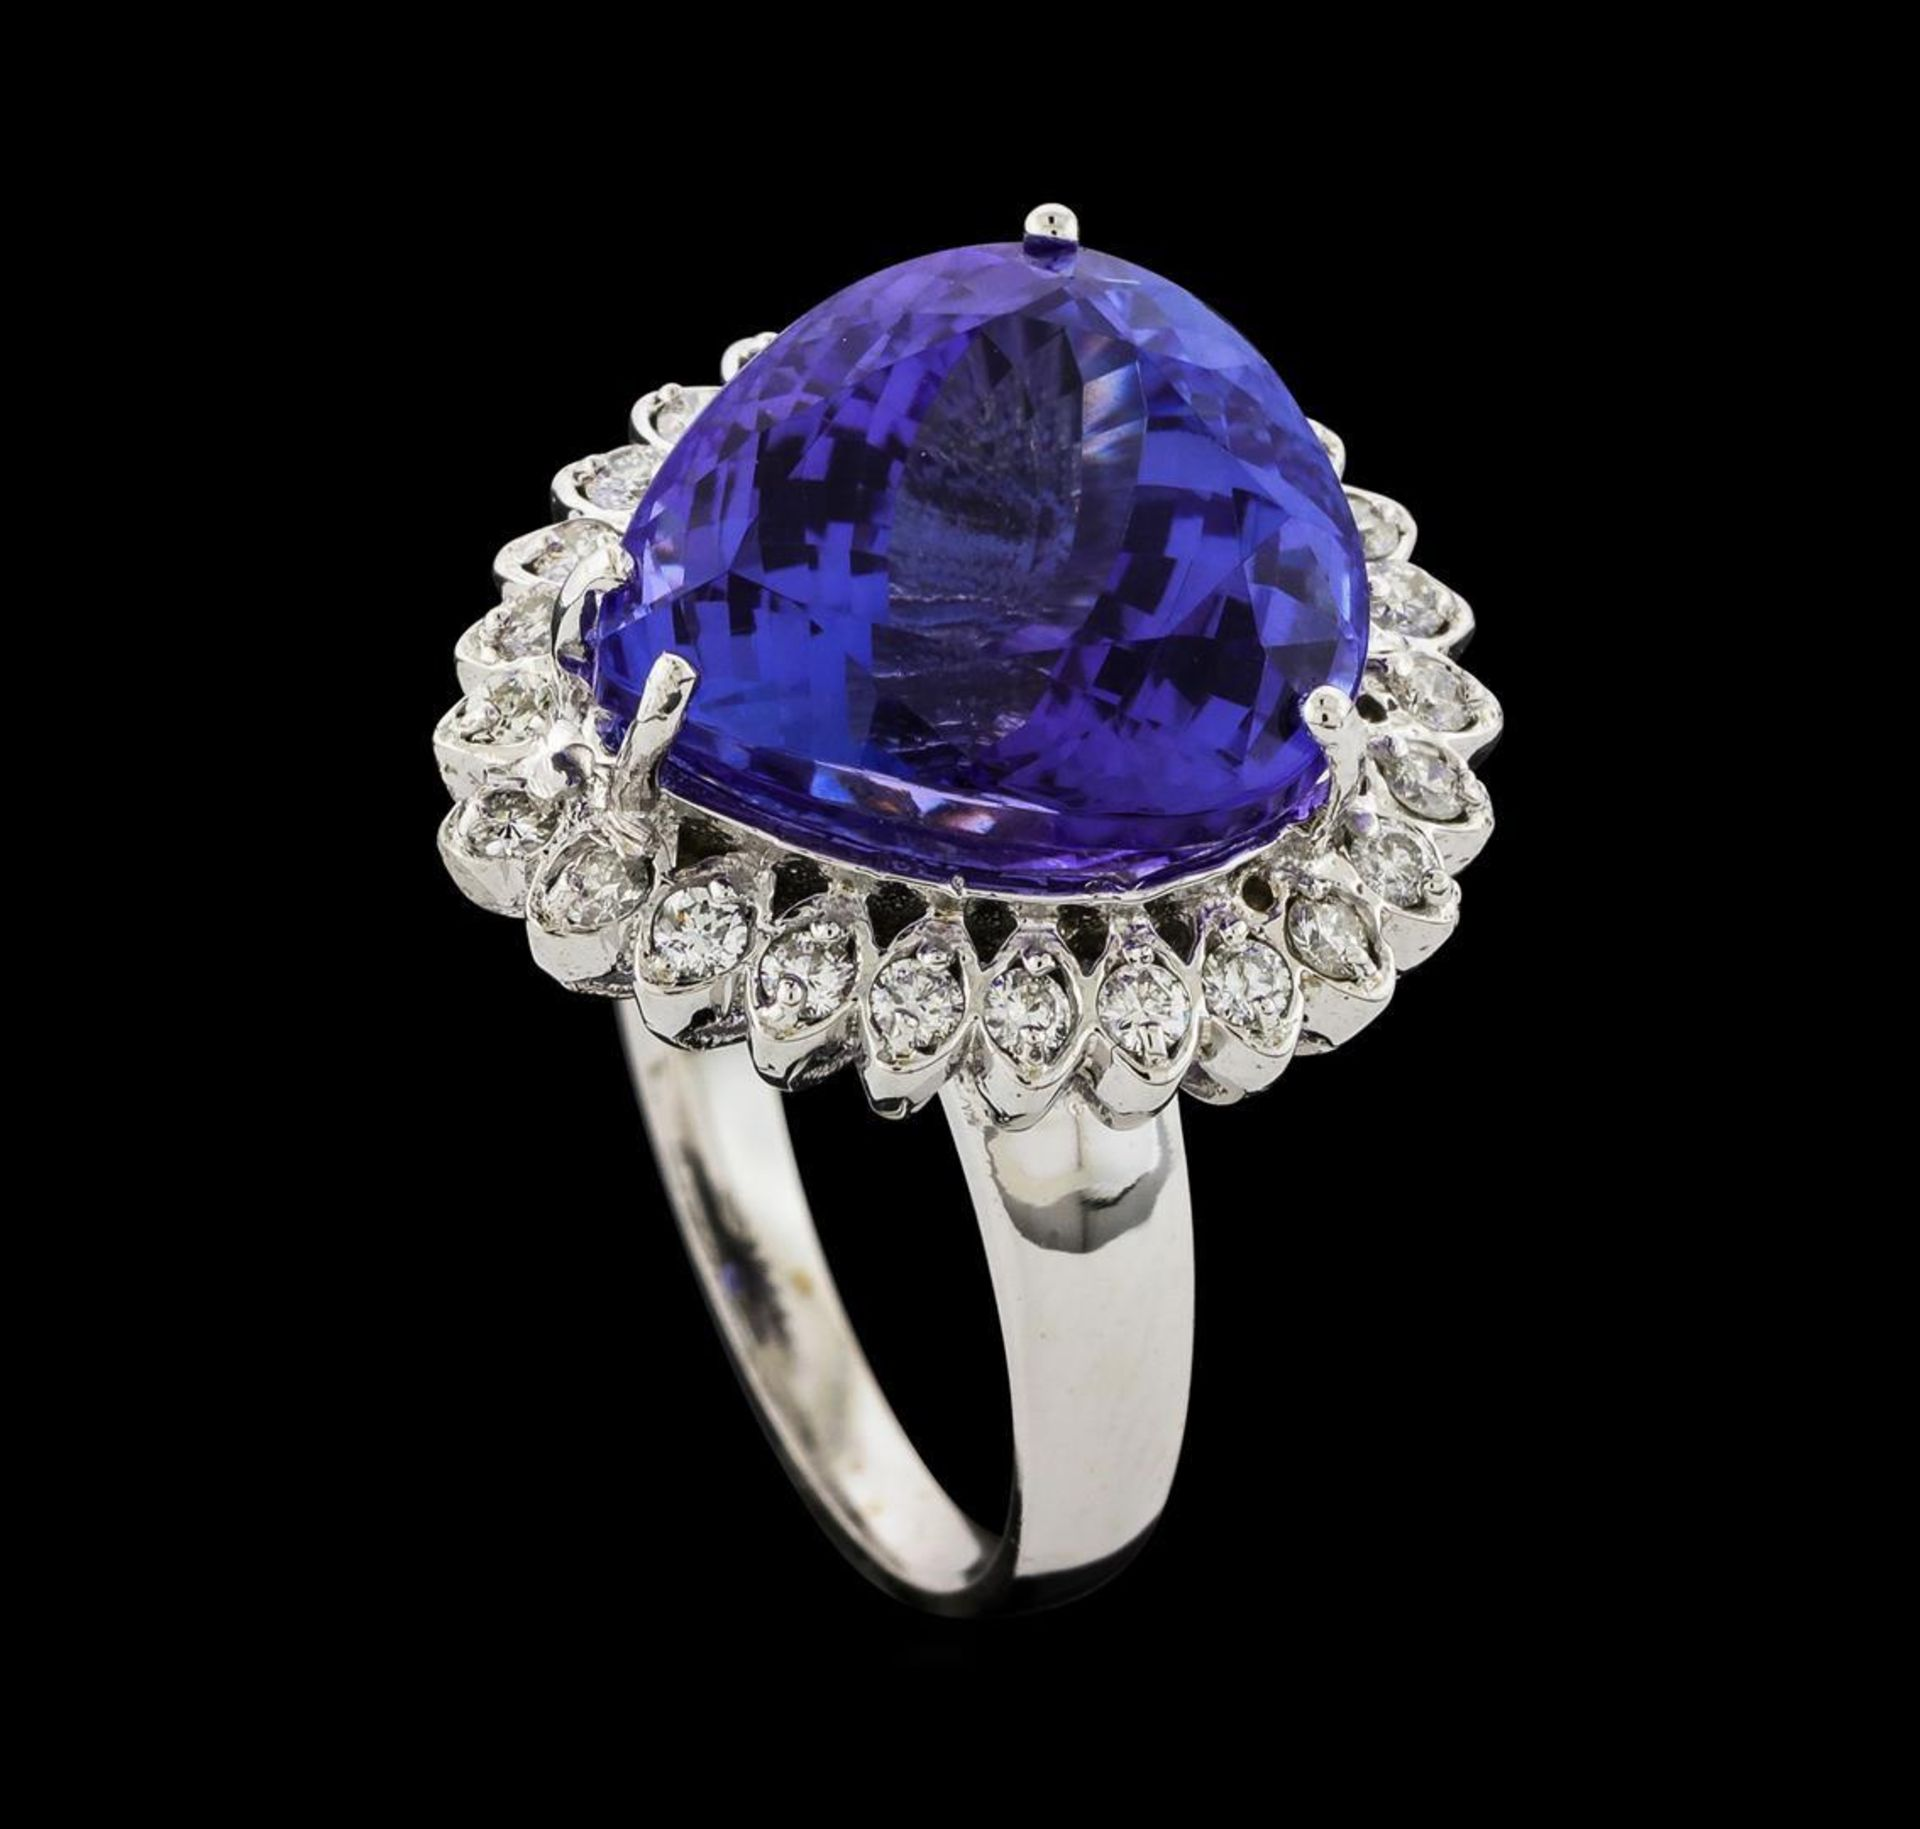 GIA Cert 13.48 ctw Tanzanite and Diamond Ring - 14KT White Gold - Image 4 of 6